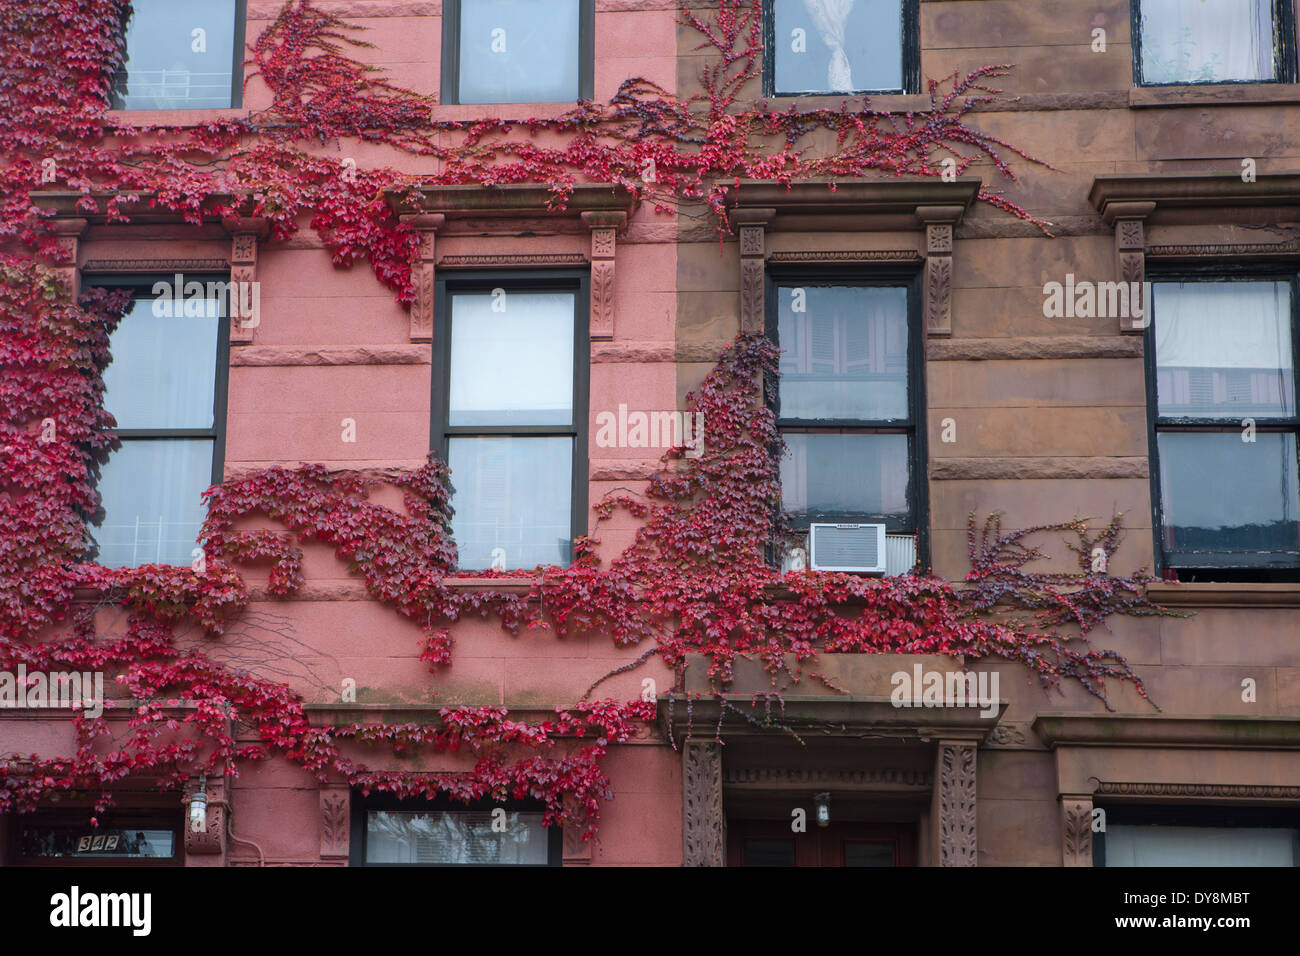 Harlem Brownstone side by side with pink ivy, New York, USA - Stock Image